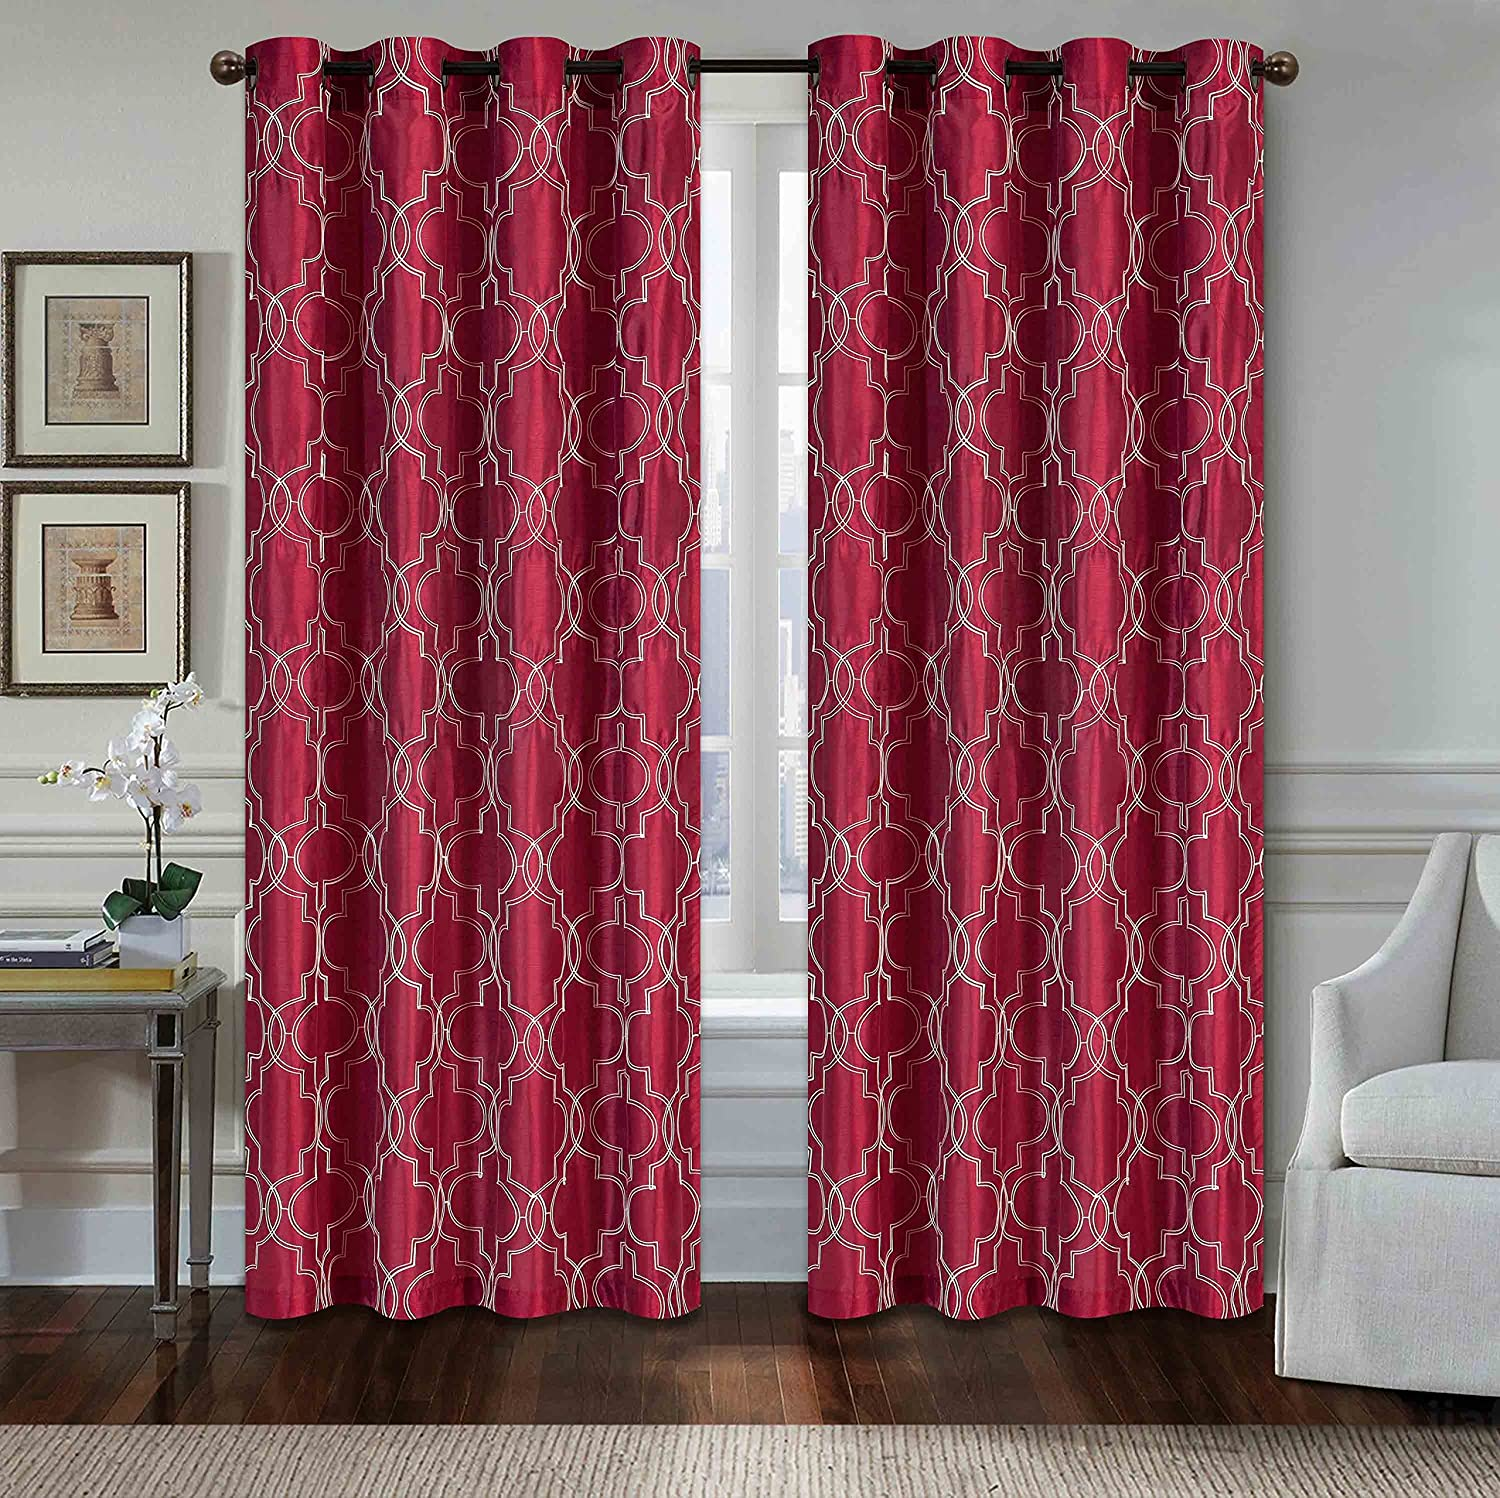 All American Collection New 1 Panel Geometric Design Faux Silk Embroidered Curtain With Grommets Burgundy